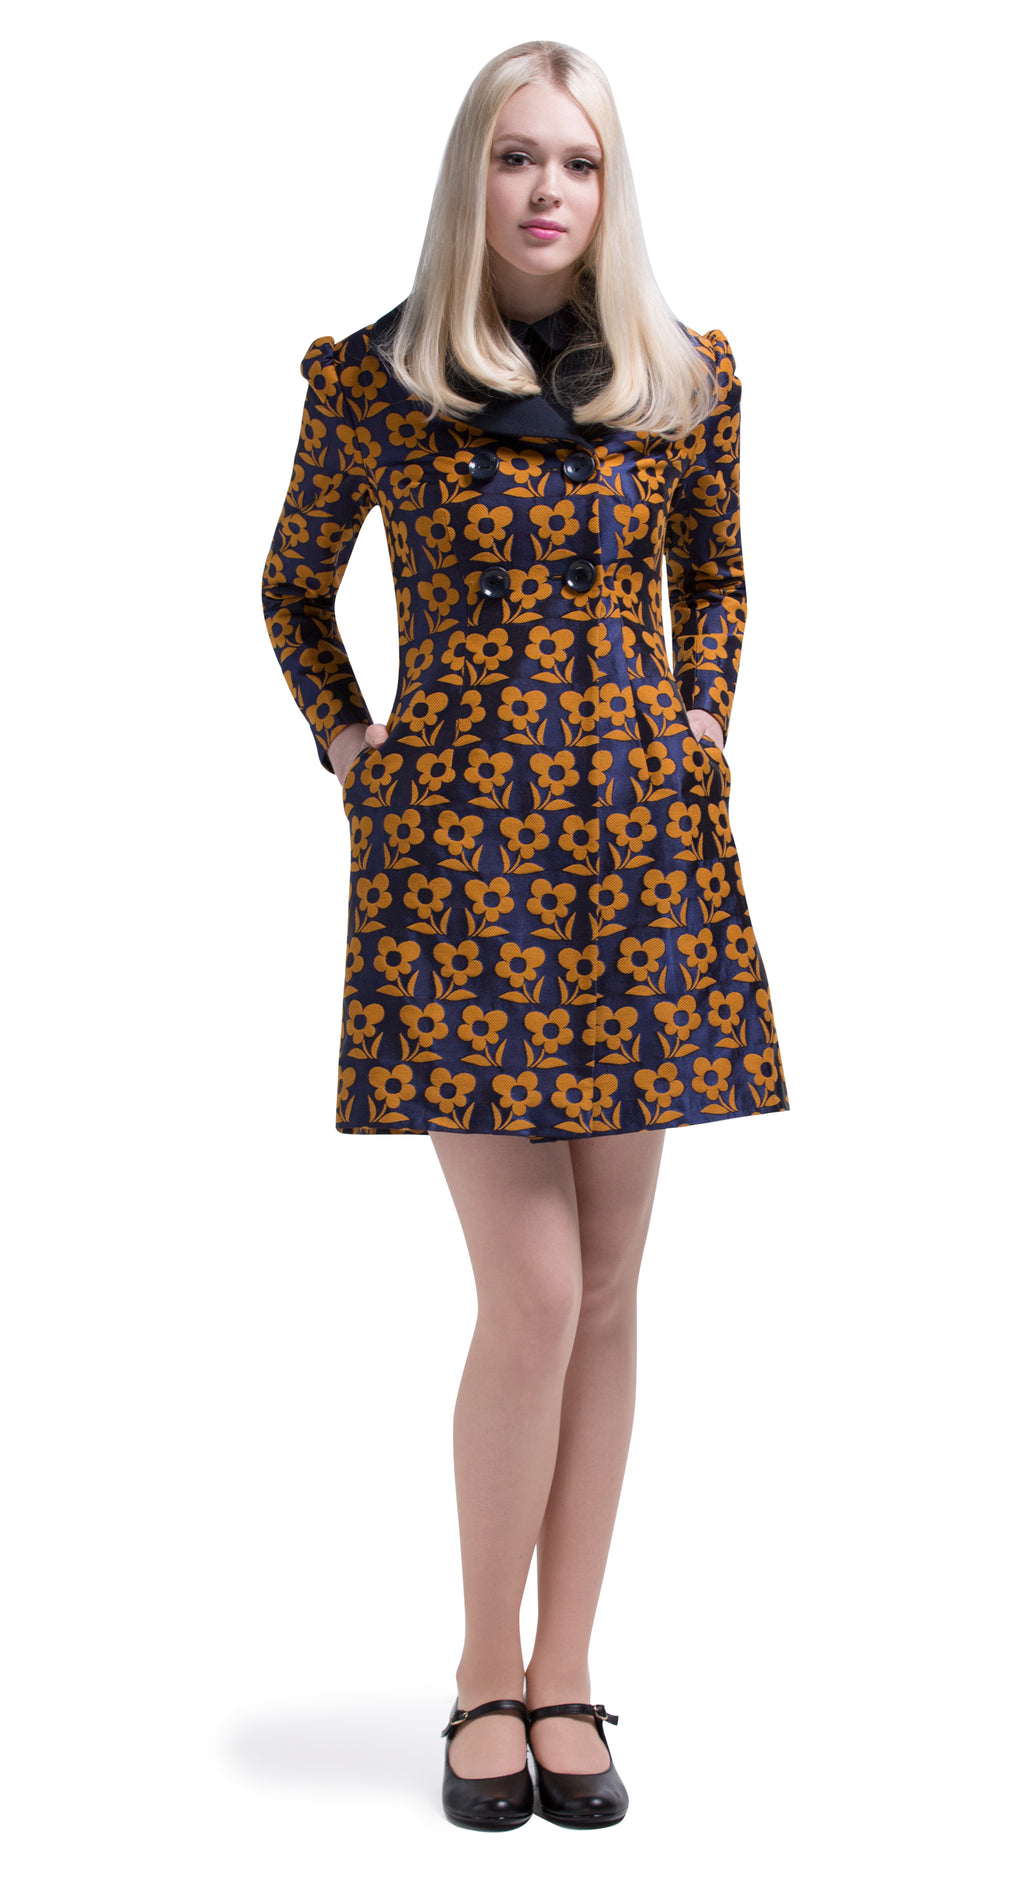 This double-breasted Autumn coat in a medium weight French weave navy blue and mustard brown floral weave has a slight puff to the sleeves and two functioning side pockets with a 4 button closure.  This piece pairs perfectly with its matching counterpart dress or can be worn as a light accompanying coat over darker spectrum dresses.